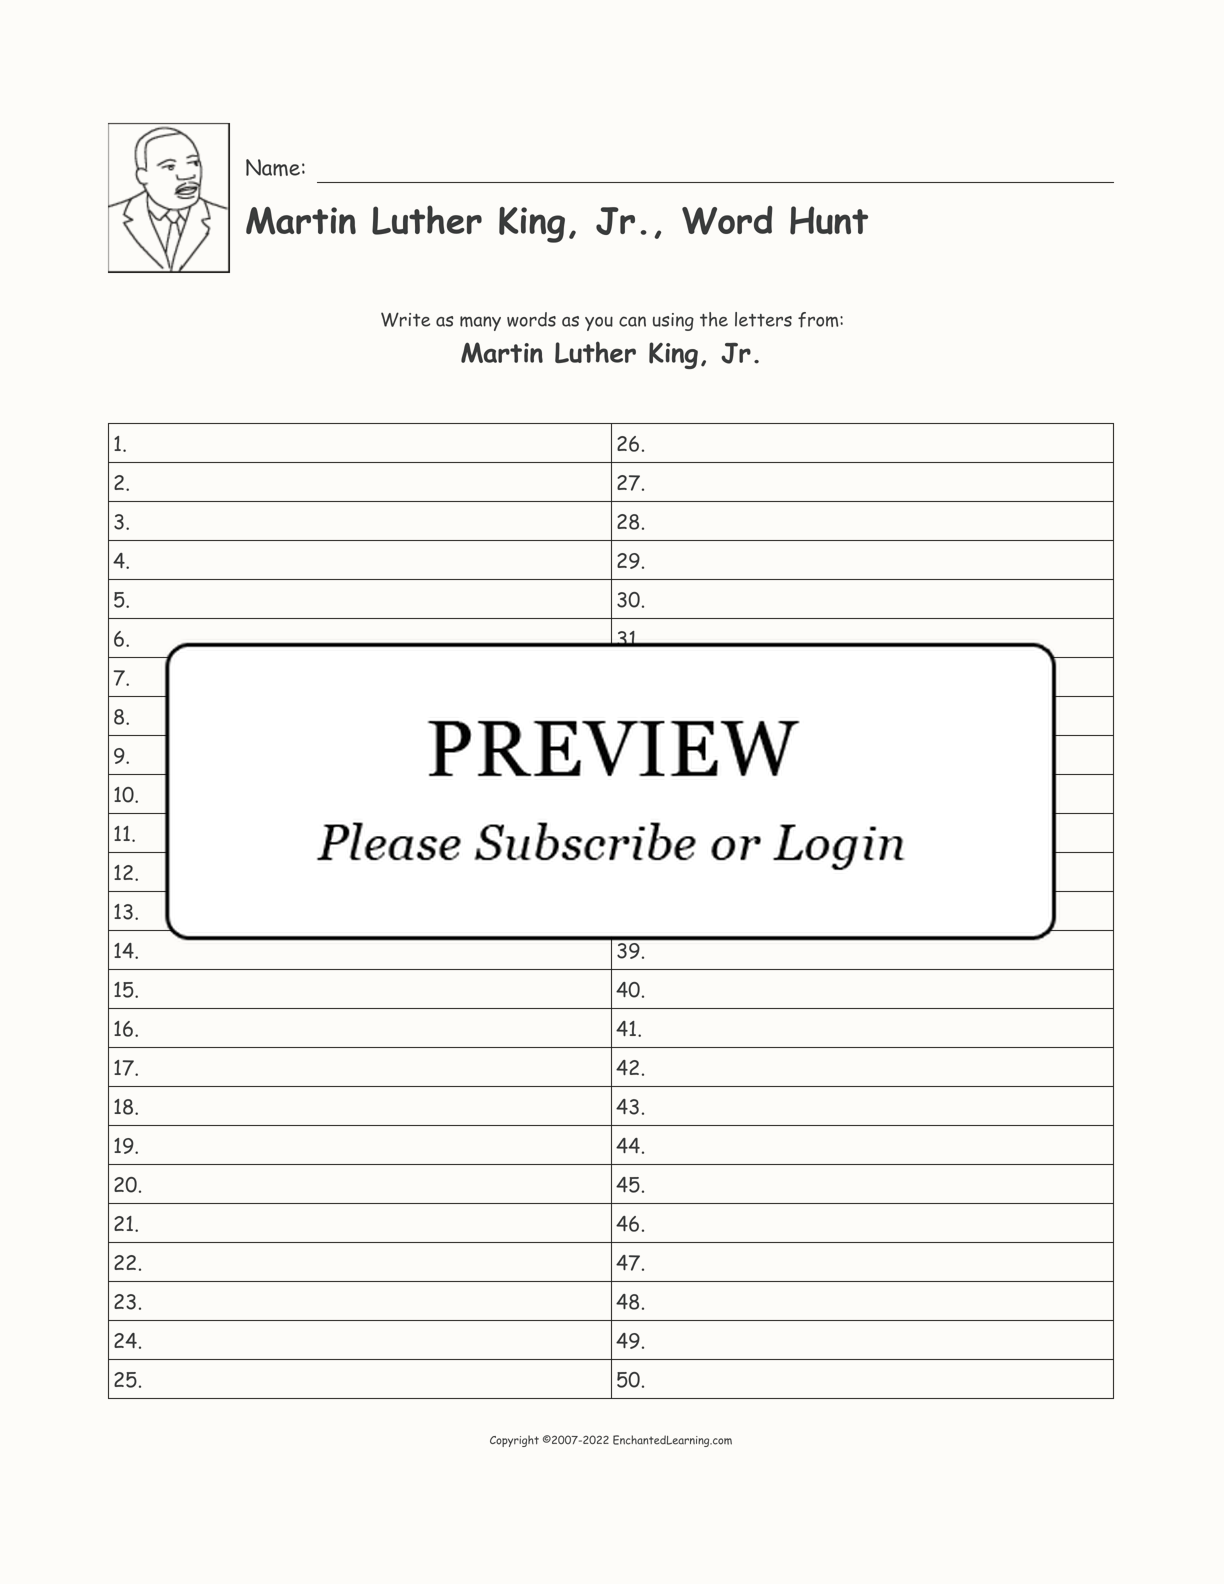 Martin Luther King Jr 50 Blank Word Hunt